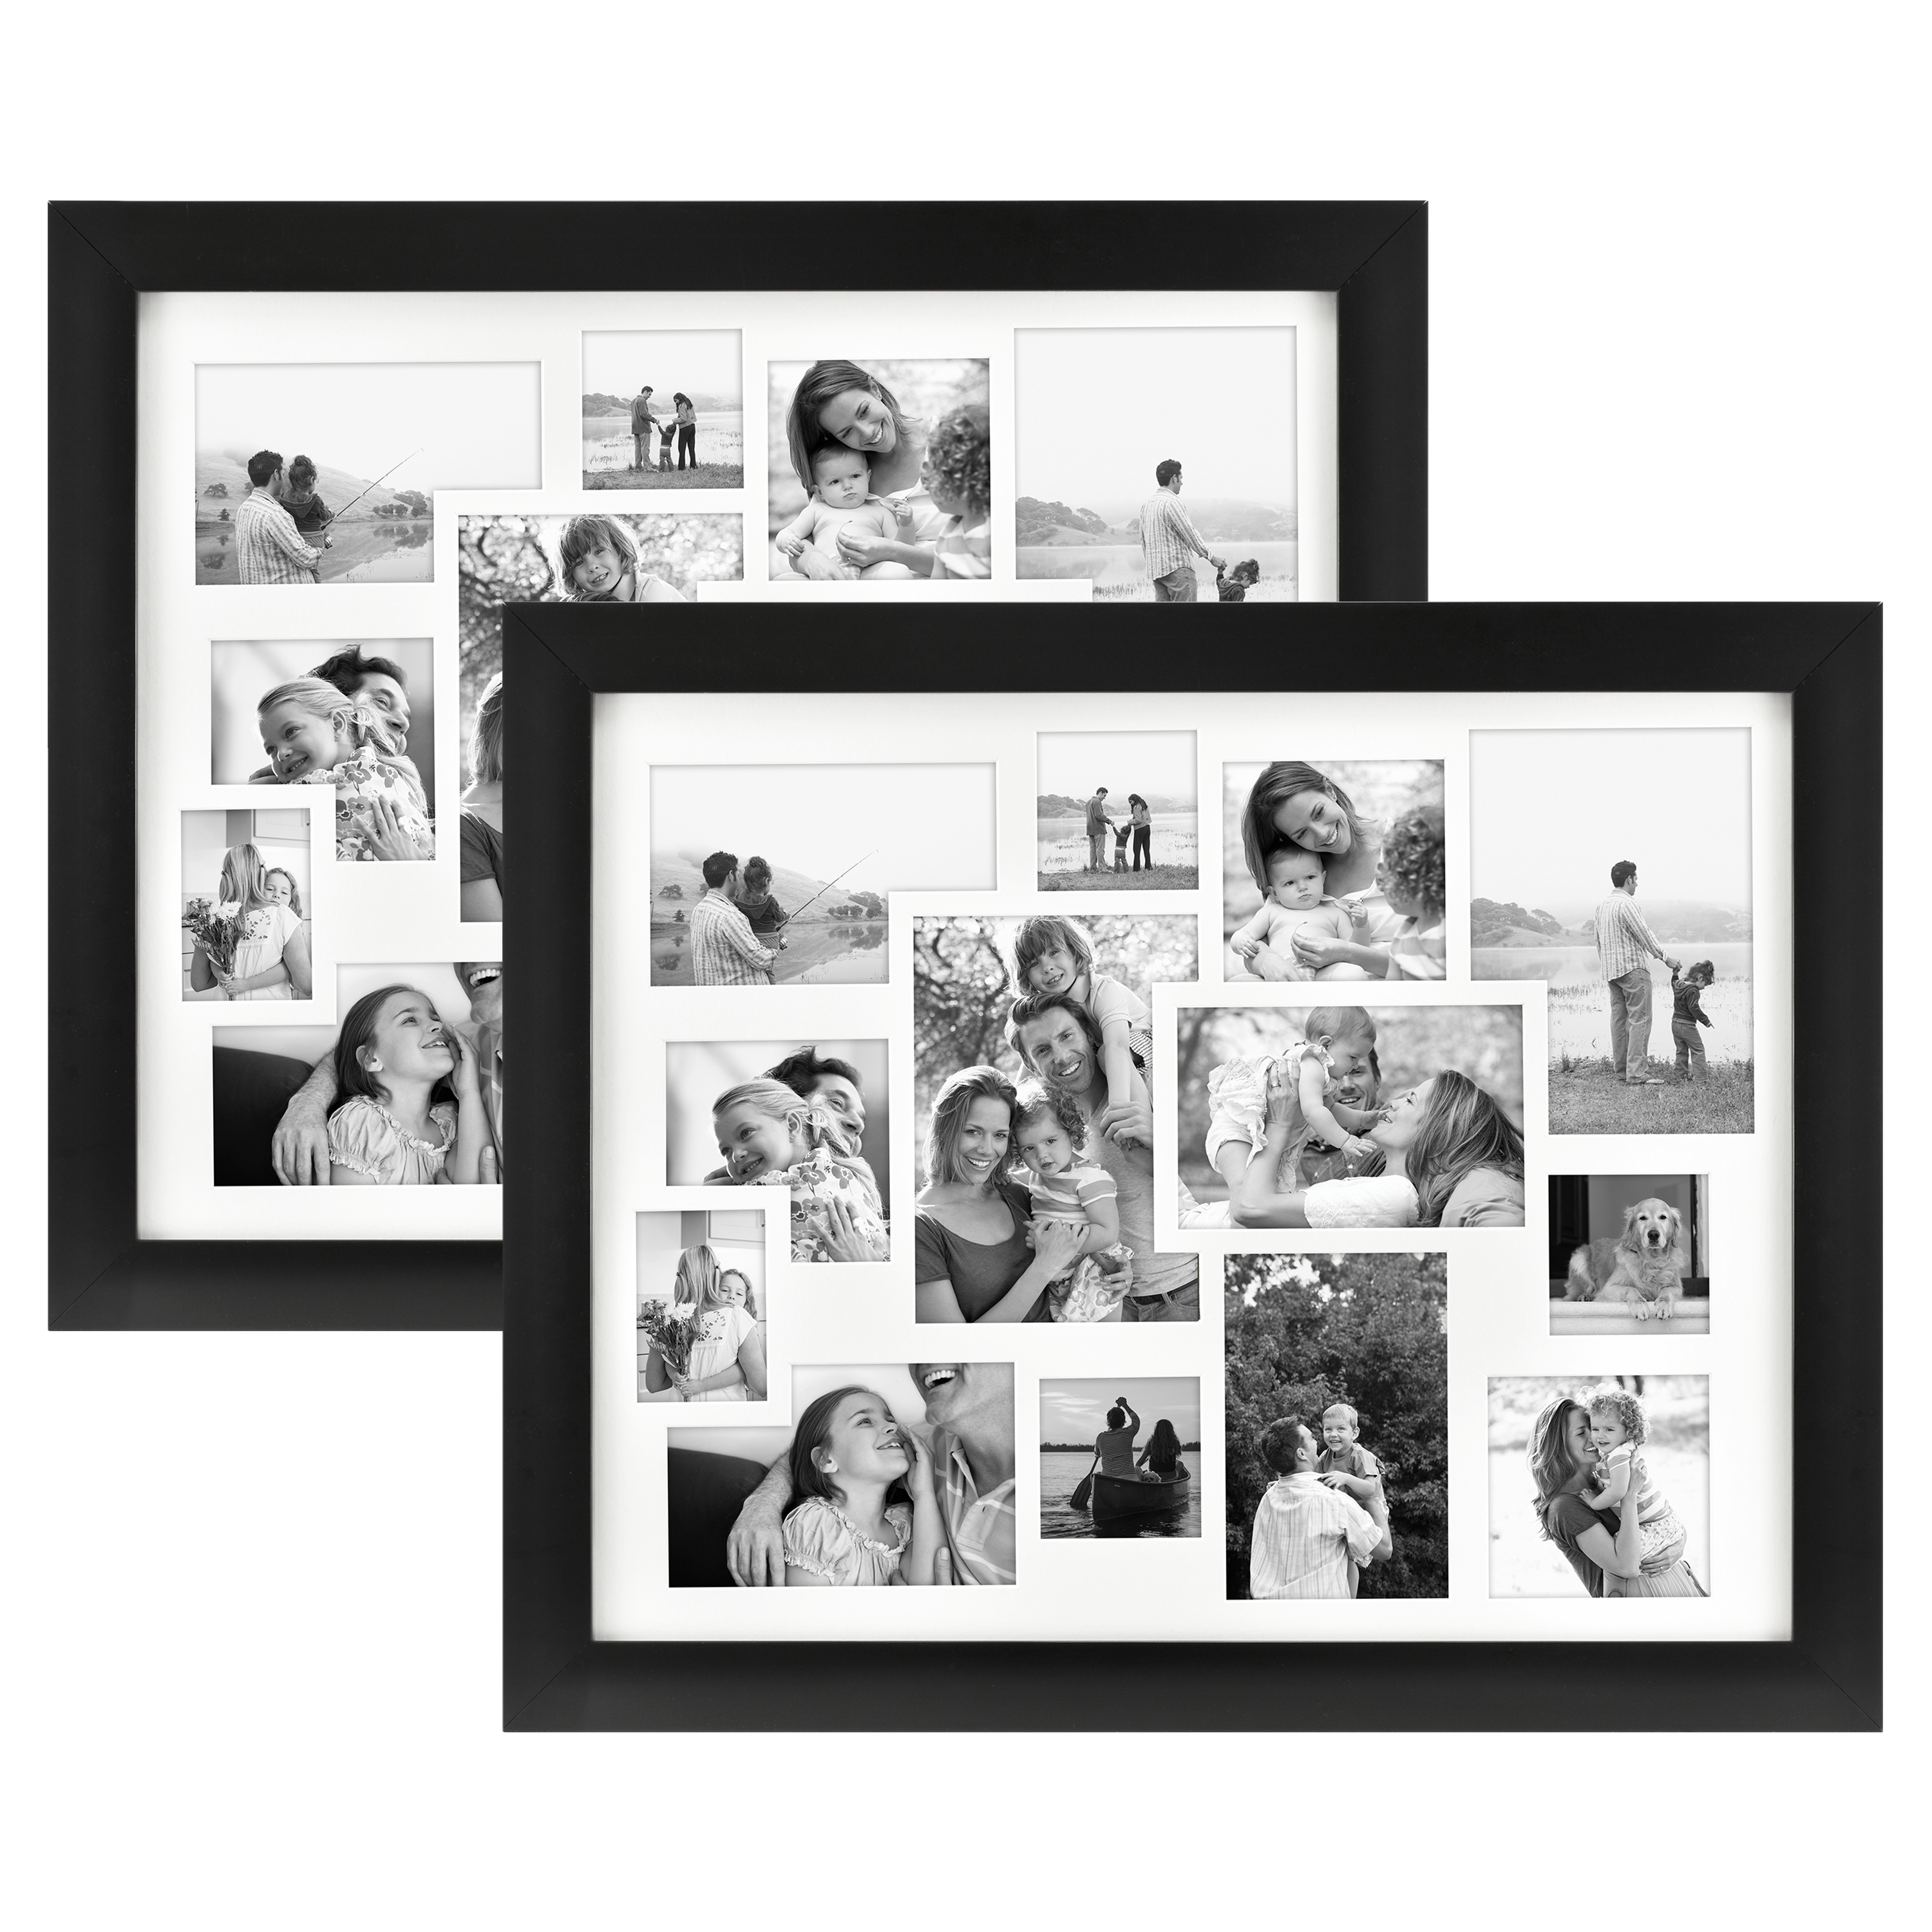 """Set of Two 16"""" x 20"""" Black Collage Matted Photo Frames - Walmart.com"""